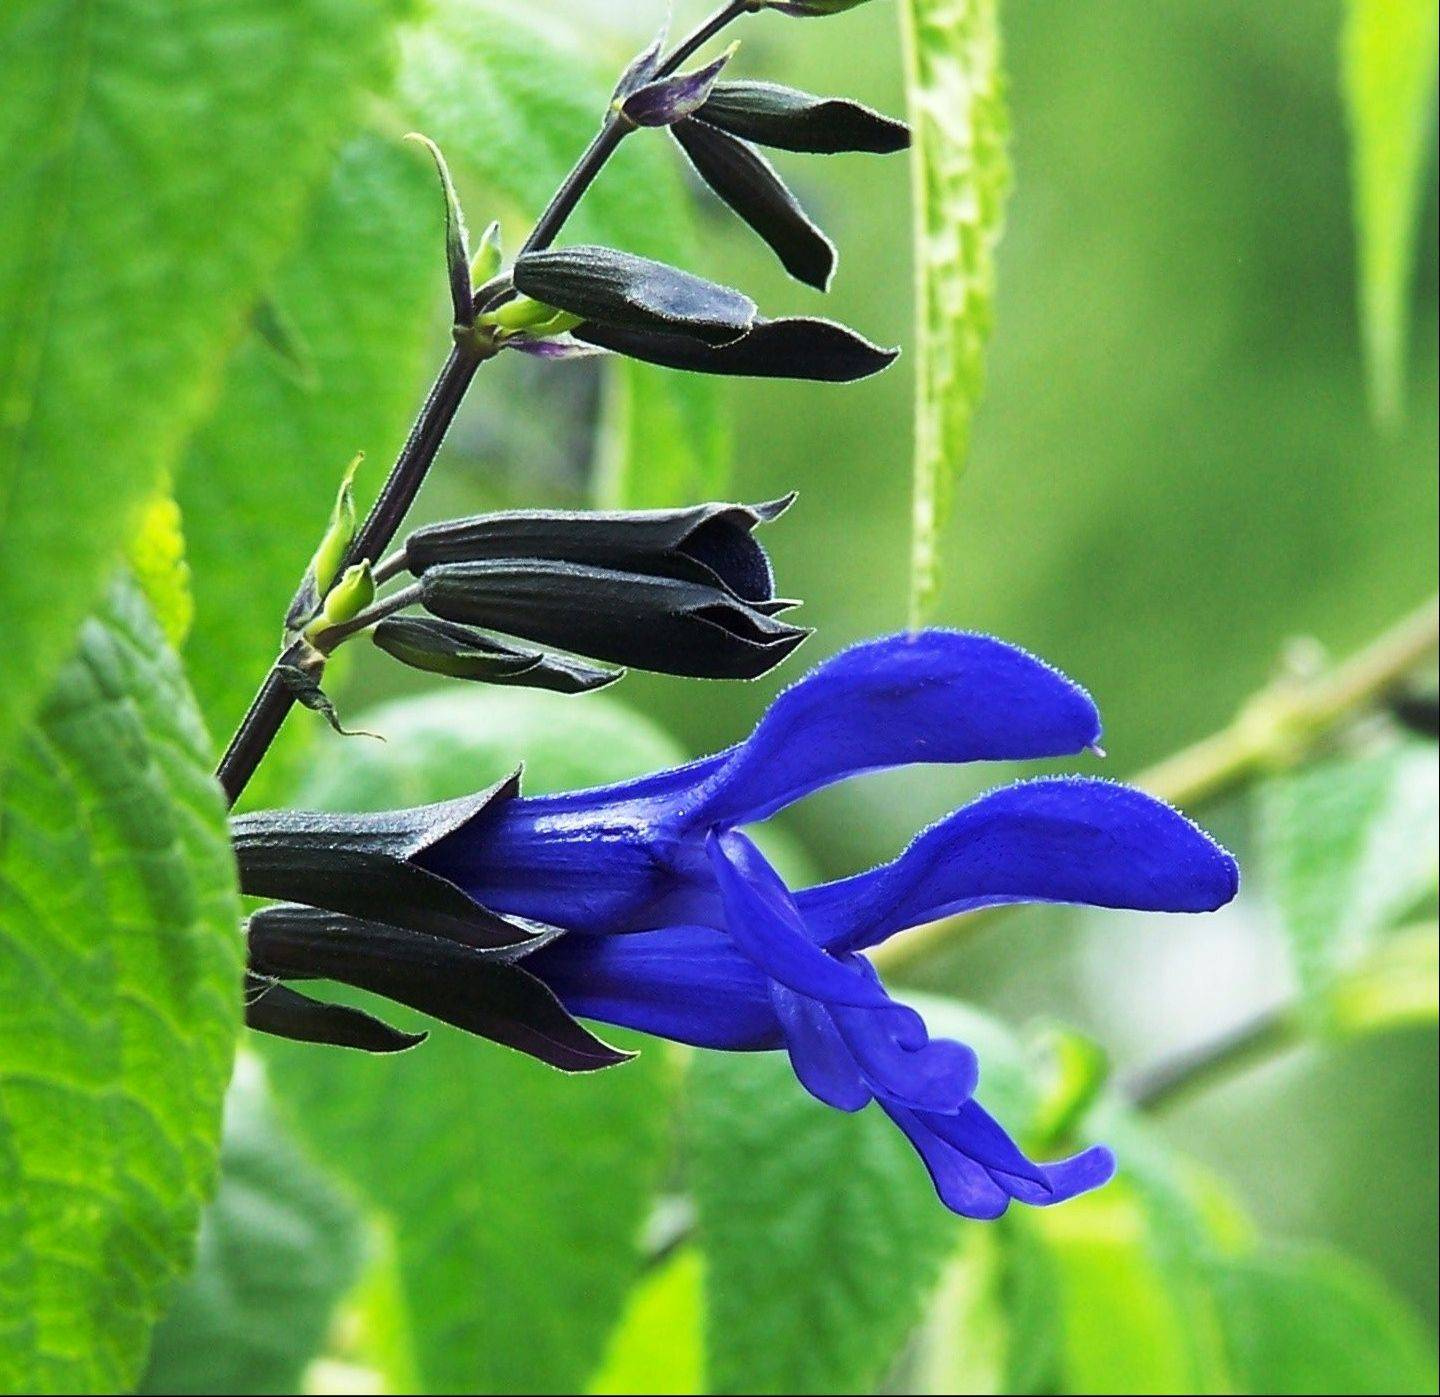 The tubular flowers of black and blue Salvia are a hummingbird's favorite.